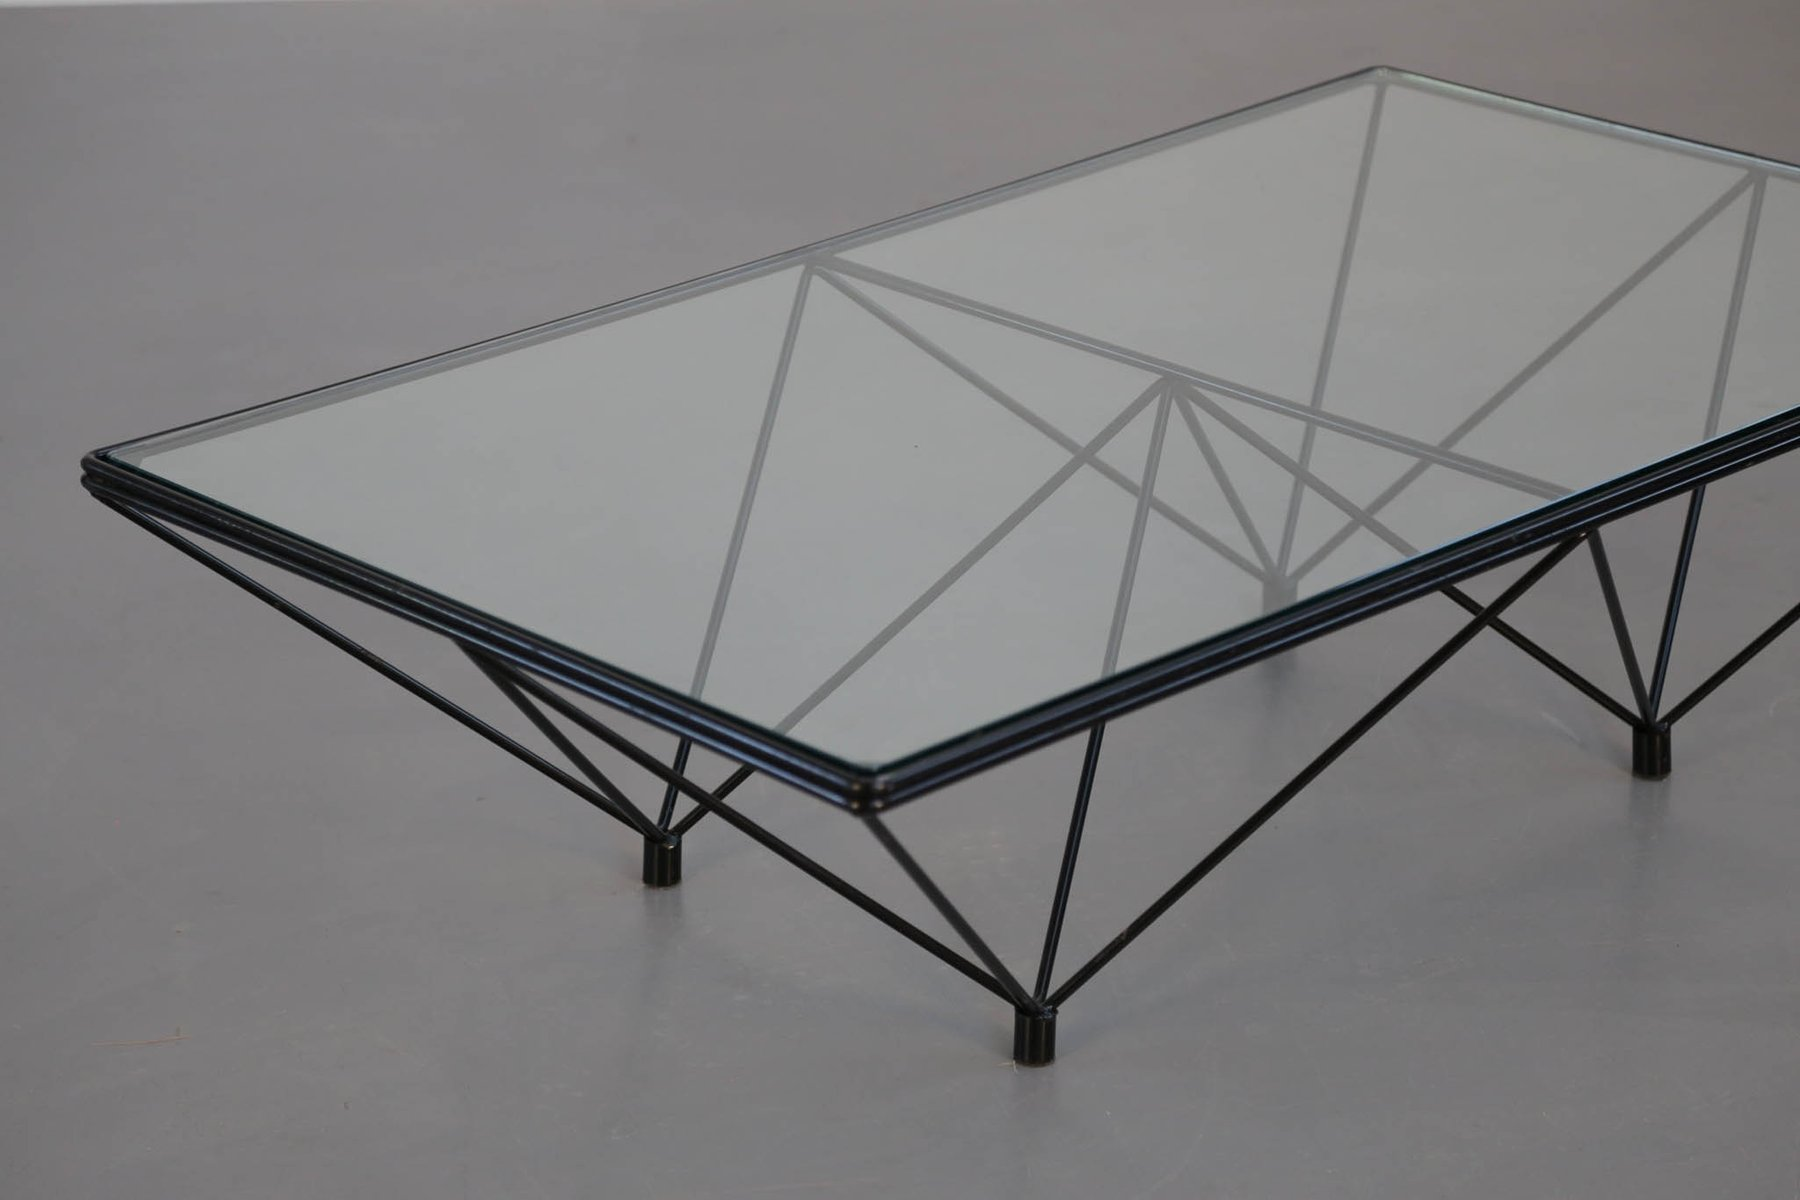 Vintage Geometric Glass Top Coffee Table for sale at Pamono